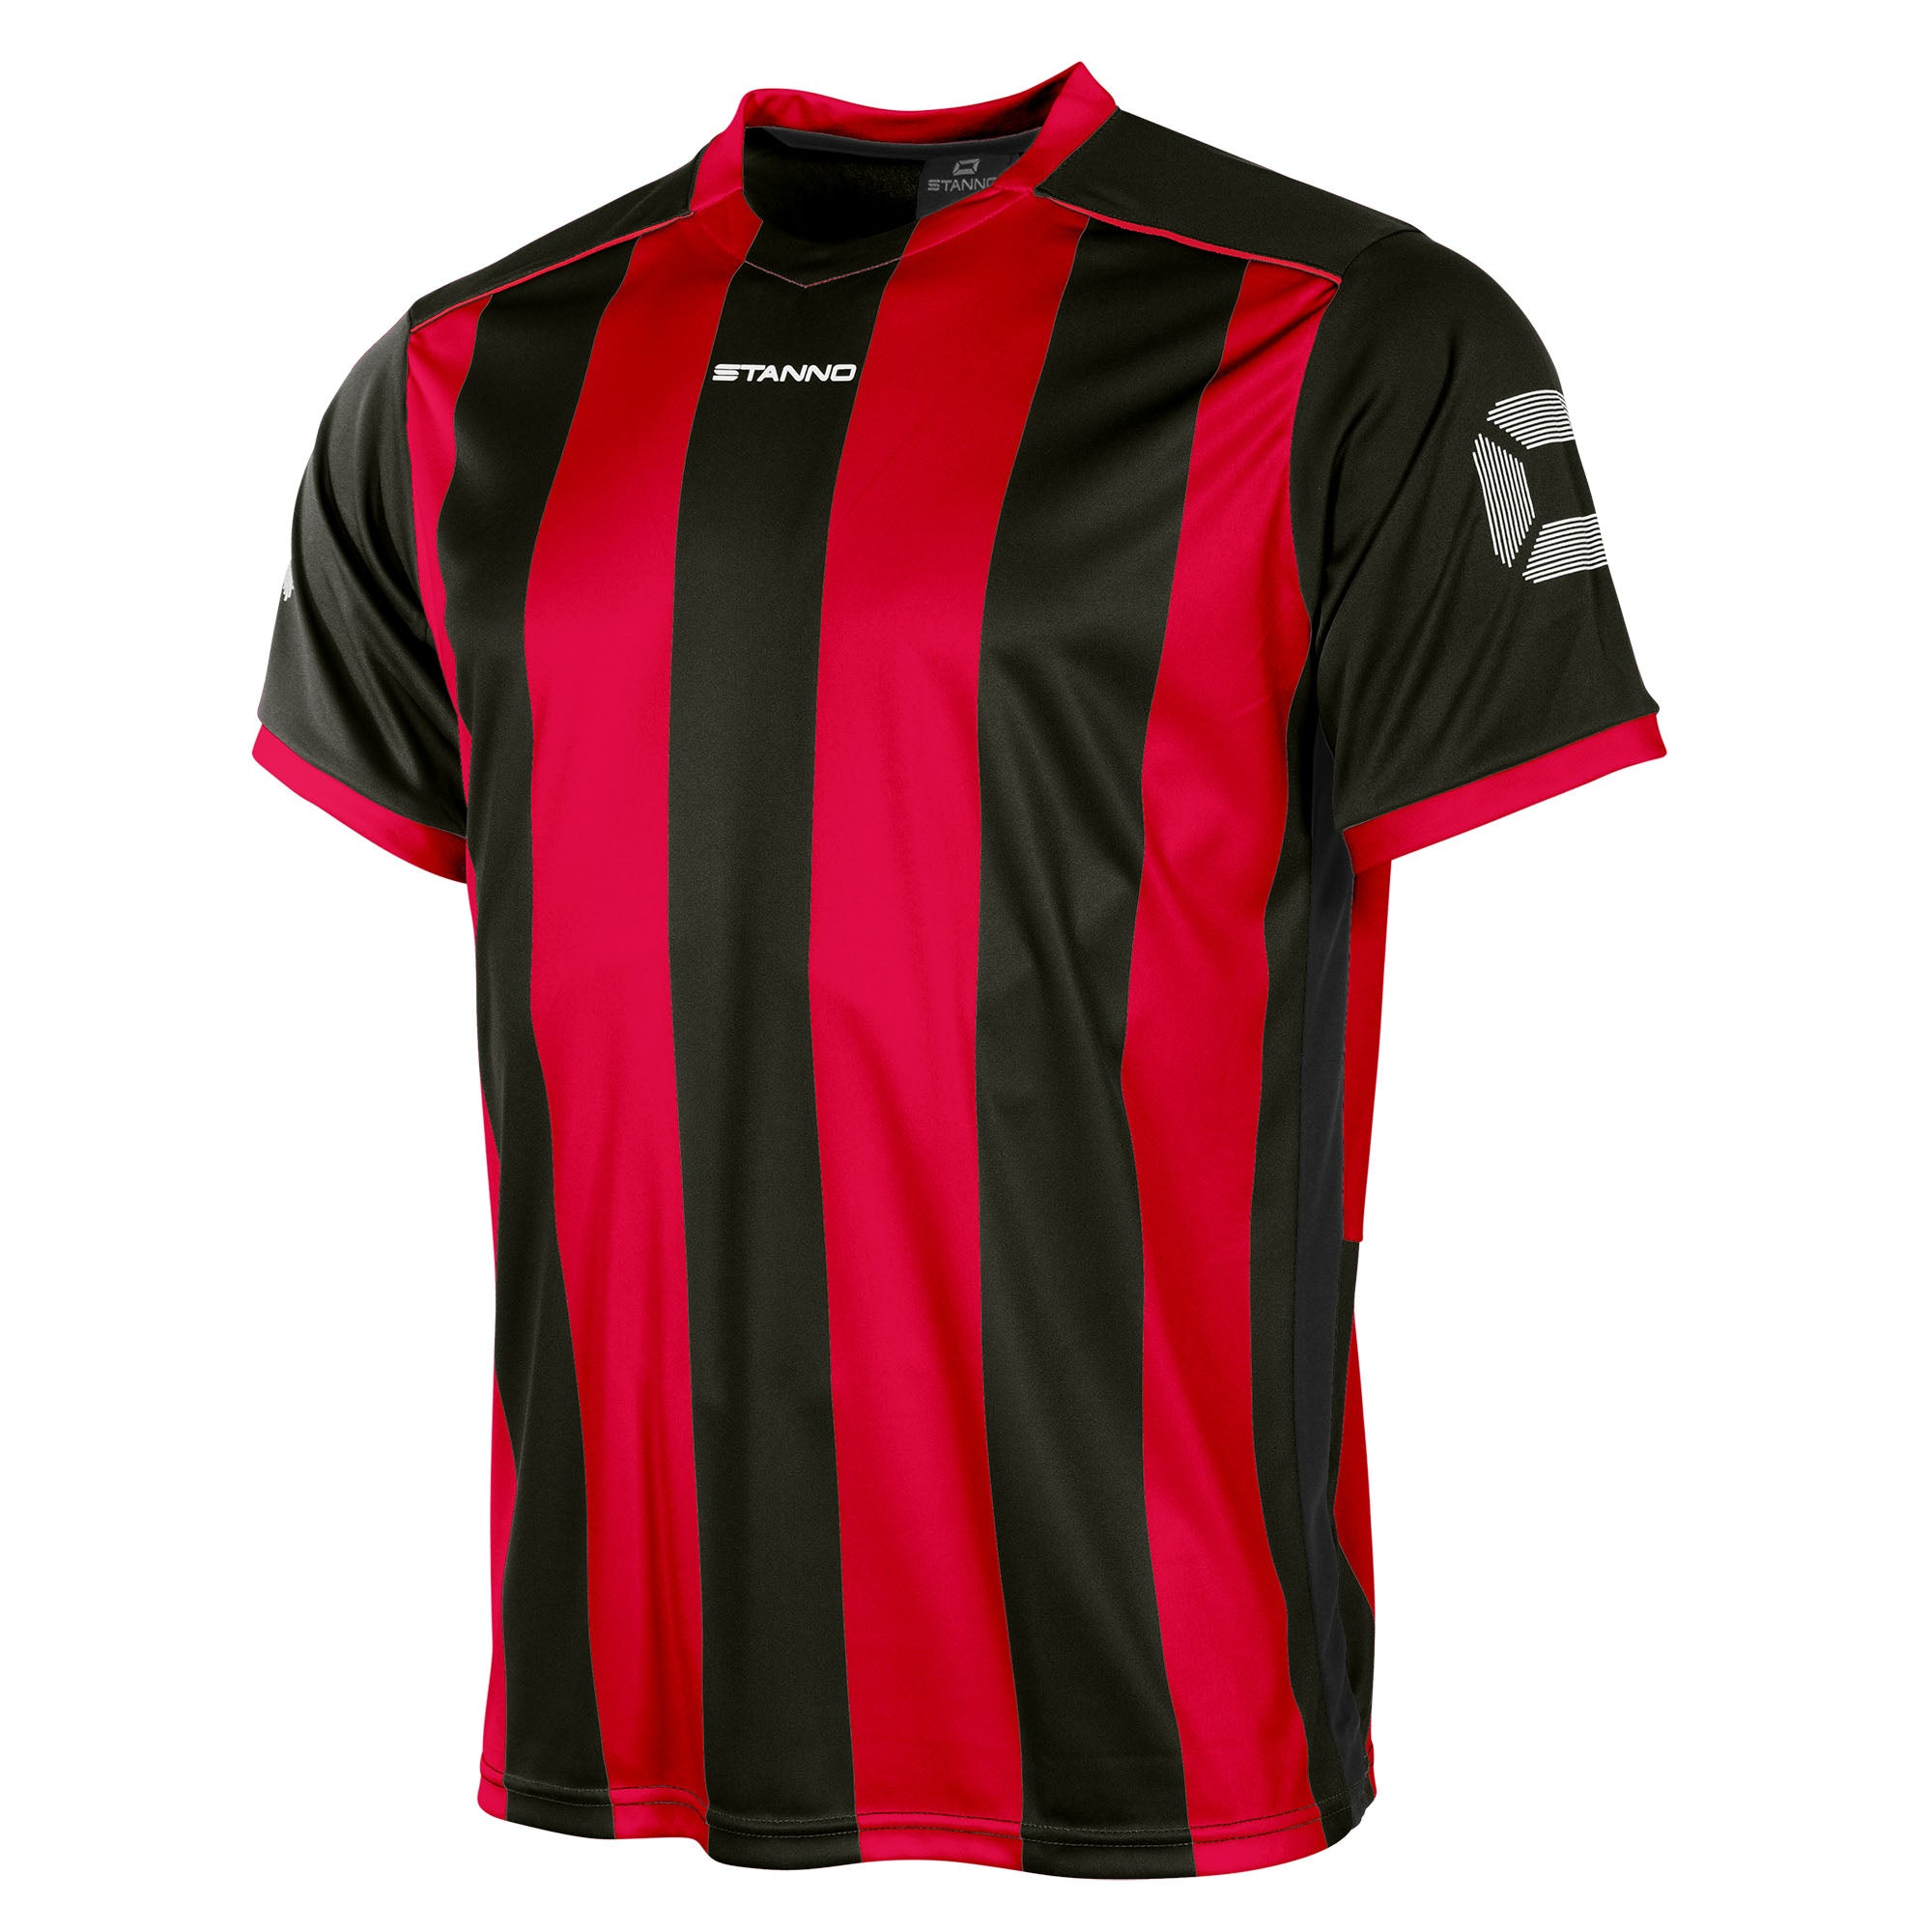 Front of Stanno Brighton short sleeved shirt in red and black vertical stripes, central printed Stanno text logo on the chest